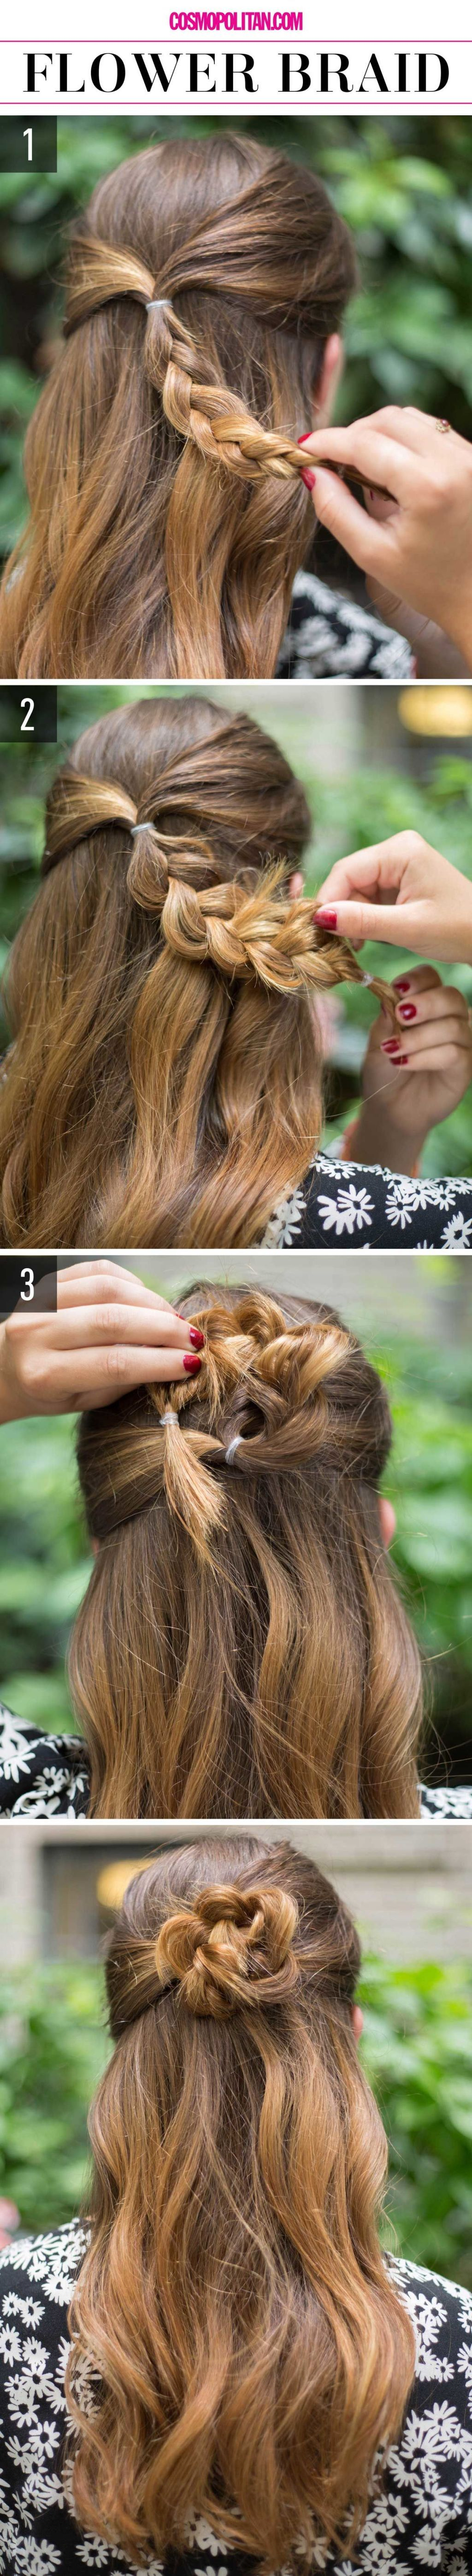 20 Super Easy Hairstyles to Master ThisYear